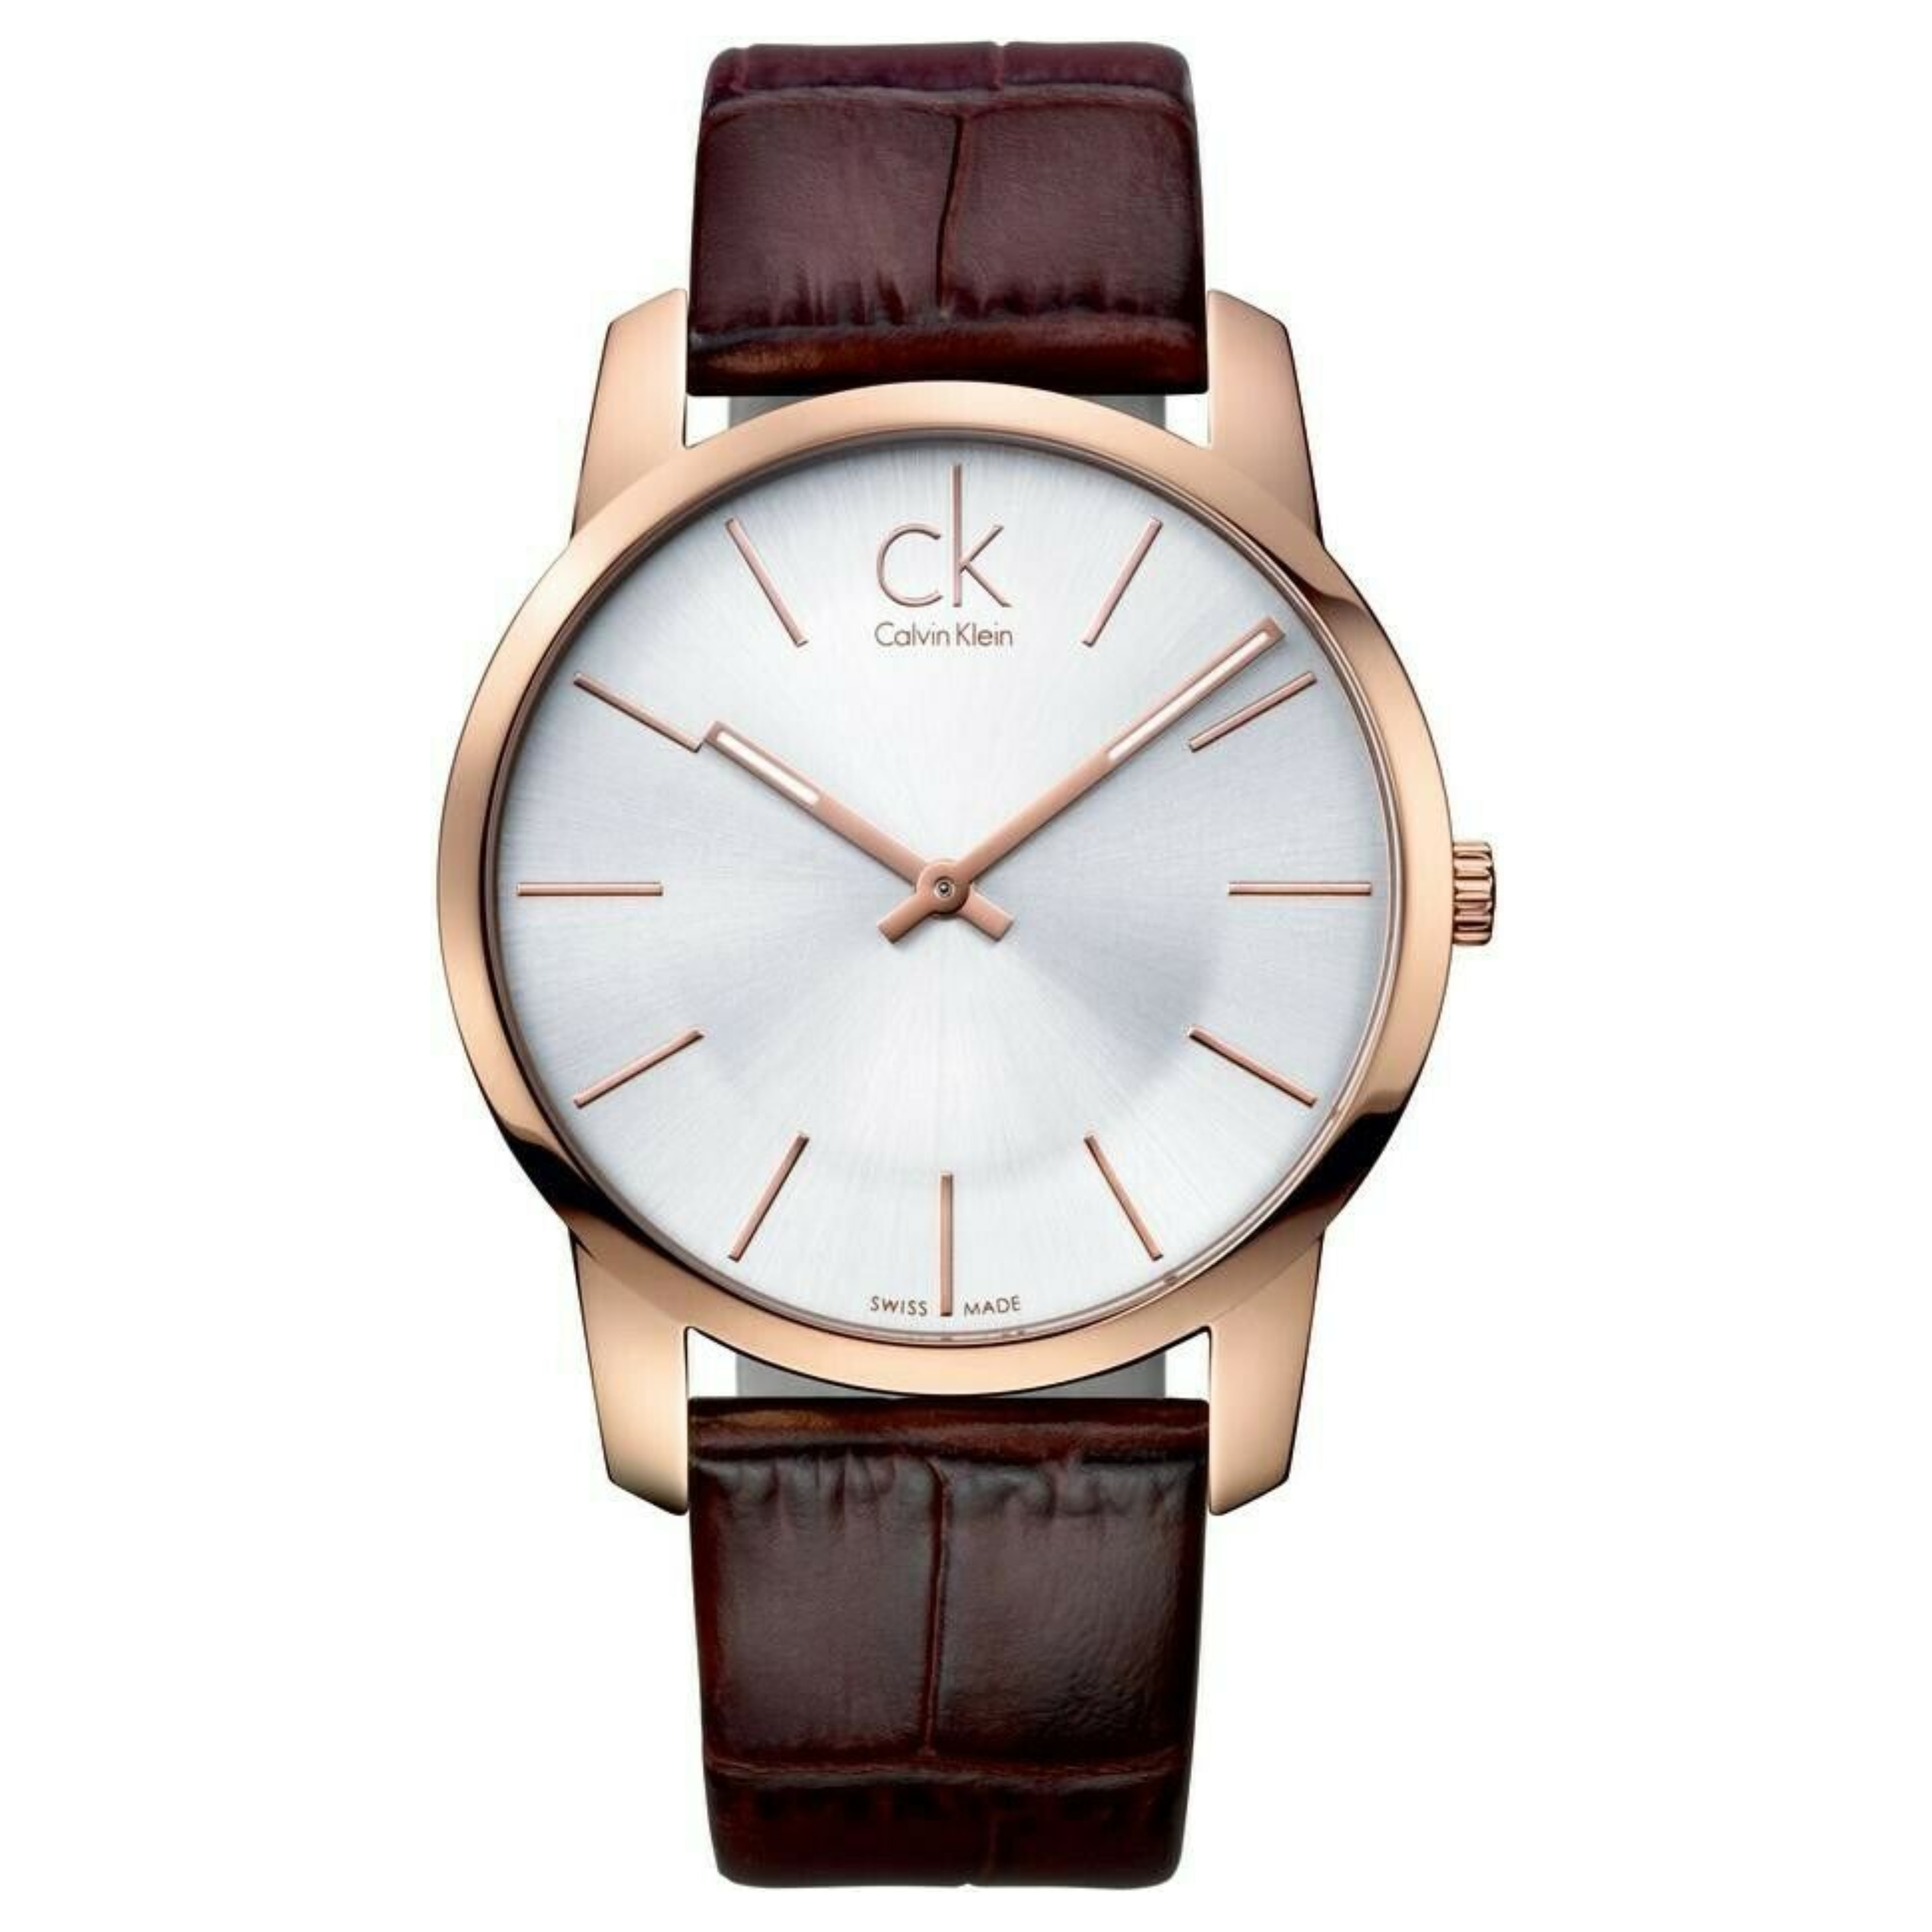 Calvin Klein City Mens' Watch K2G21629 | PVD Rose Case Silver Dial | Leather Strap